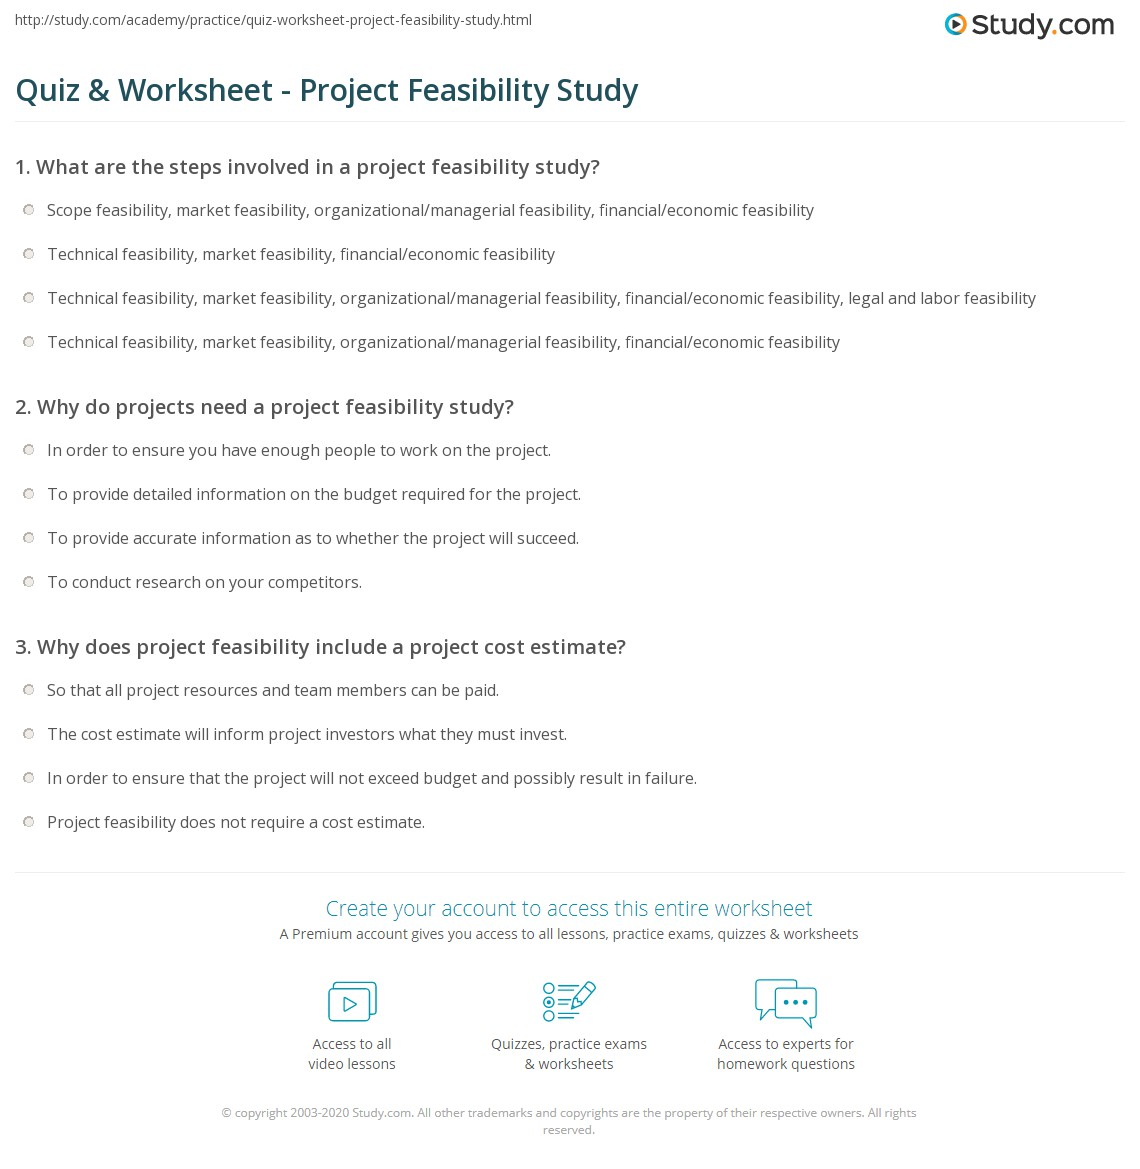 quiz worksheet project feasibility study. Black Bedroom Furniture Sets. Home Design Ideas